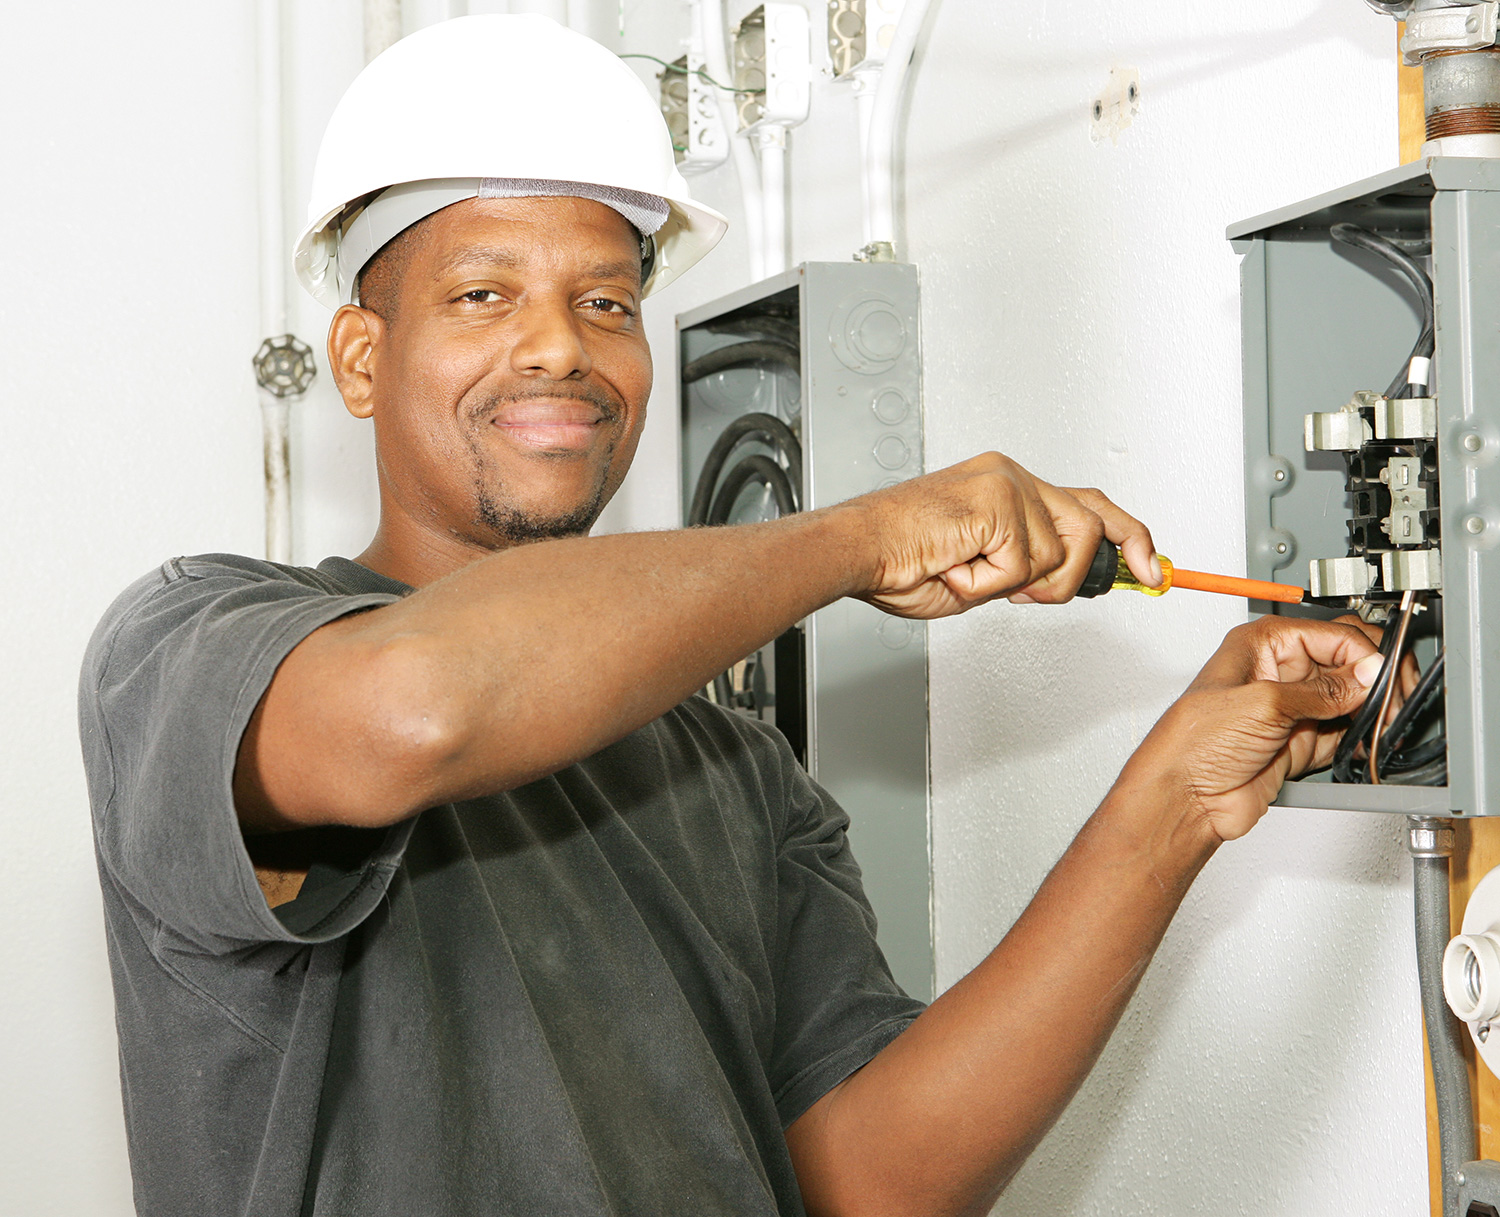 Corporate Services, Inc. is hiring Maintenance Technicians — up to $0.00/hour — apply today!